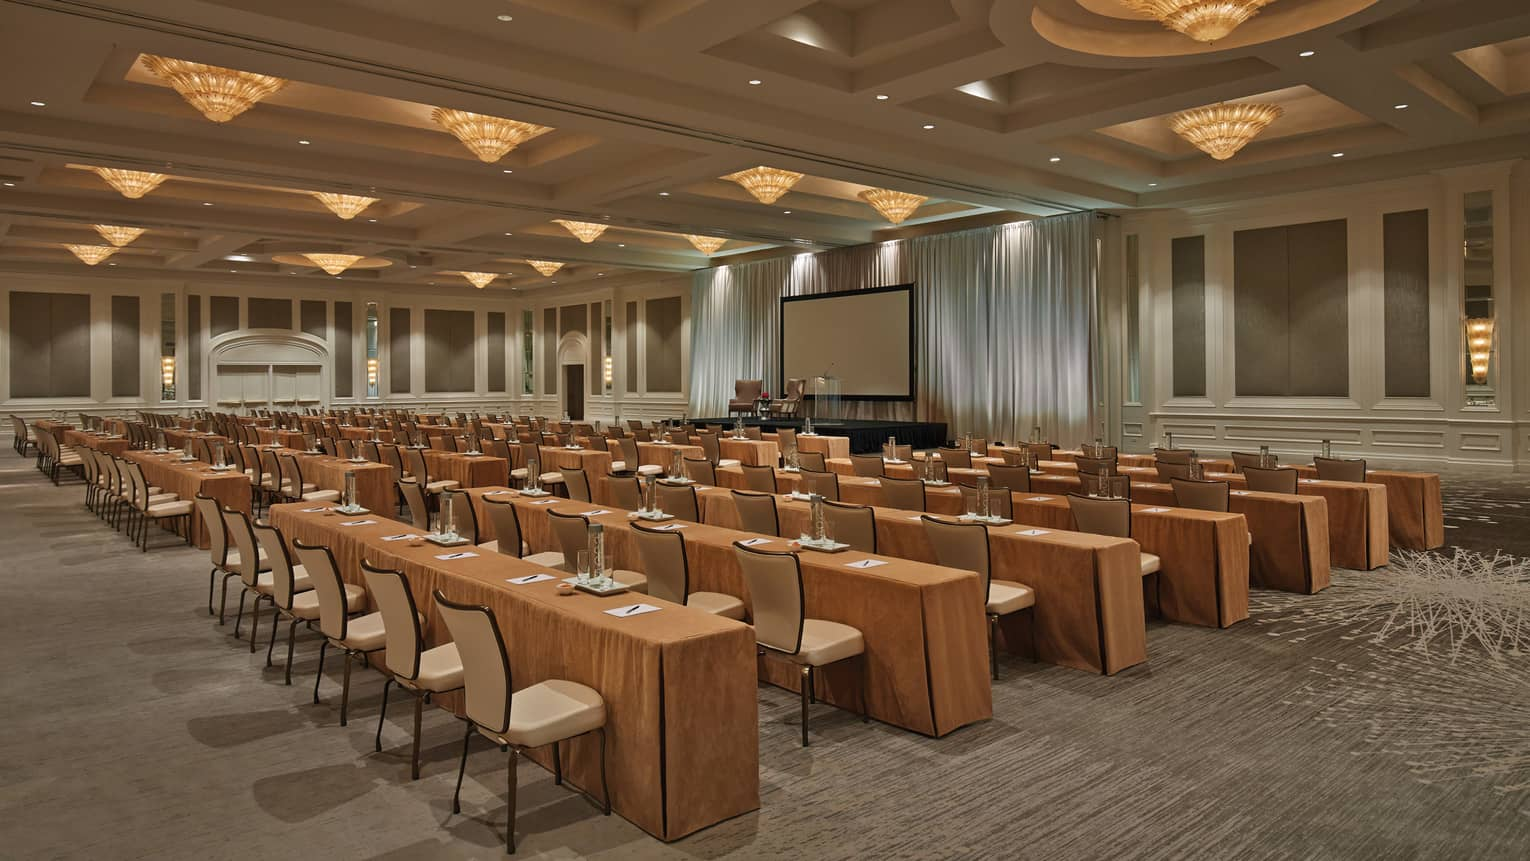 Conference with rows of meeting tables, chairs under cone-shaped lights in large ballroom